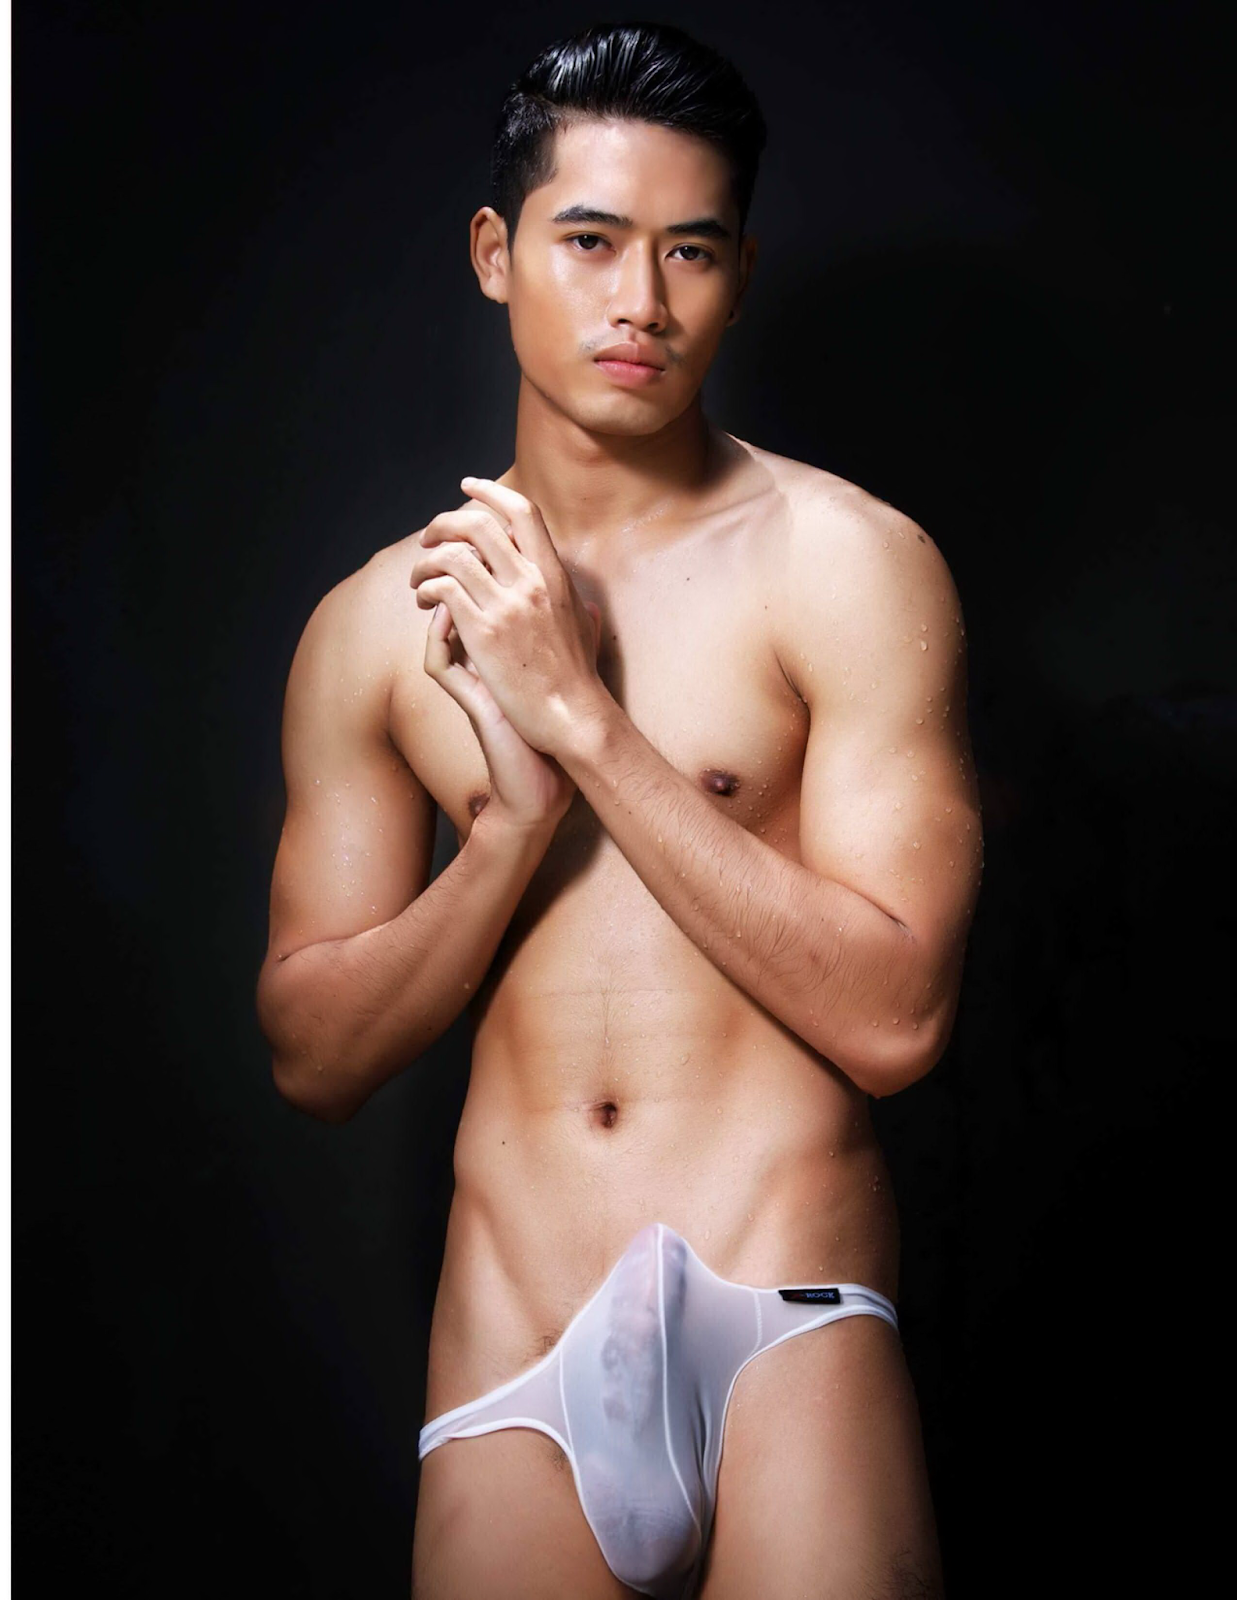 Indonesian man naked model 14